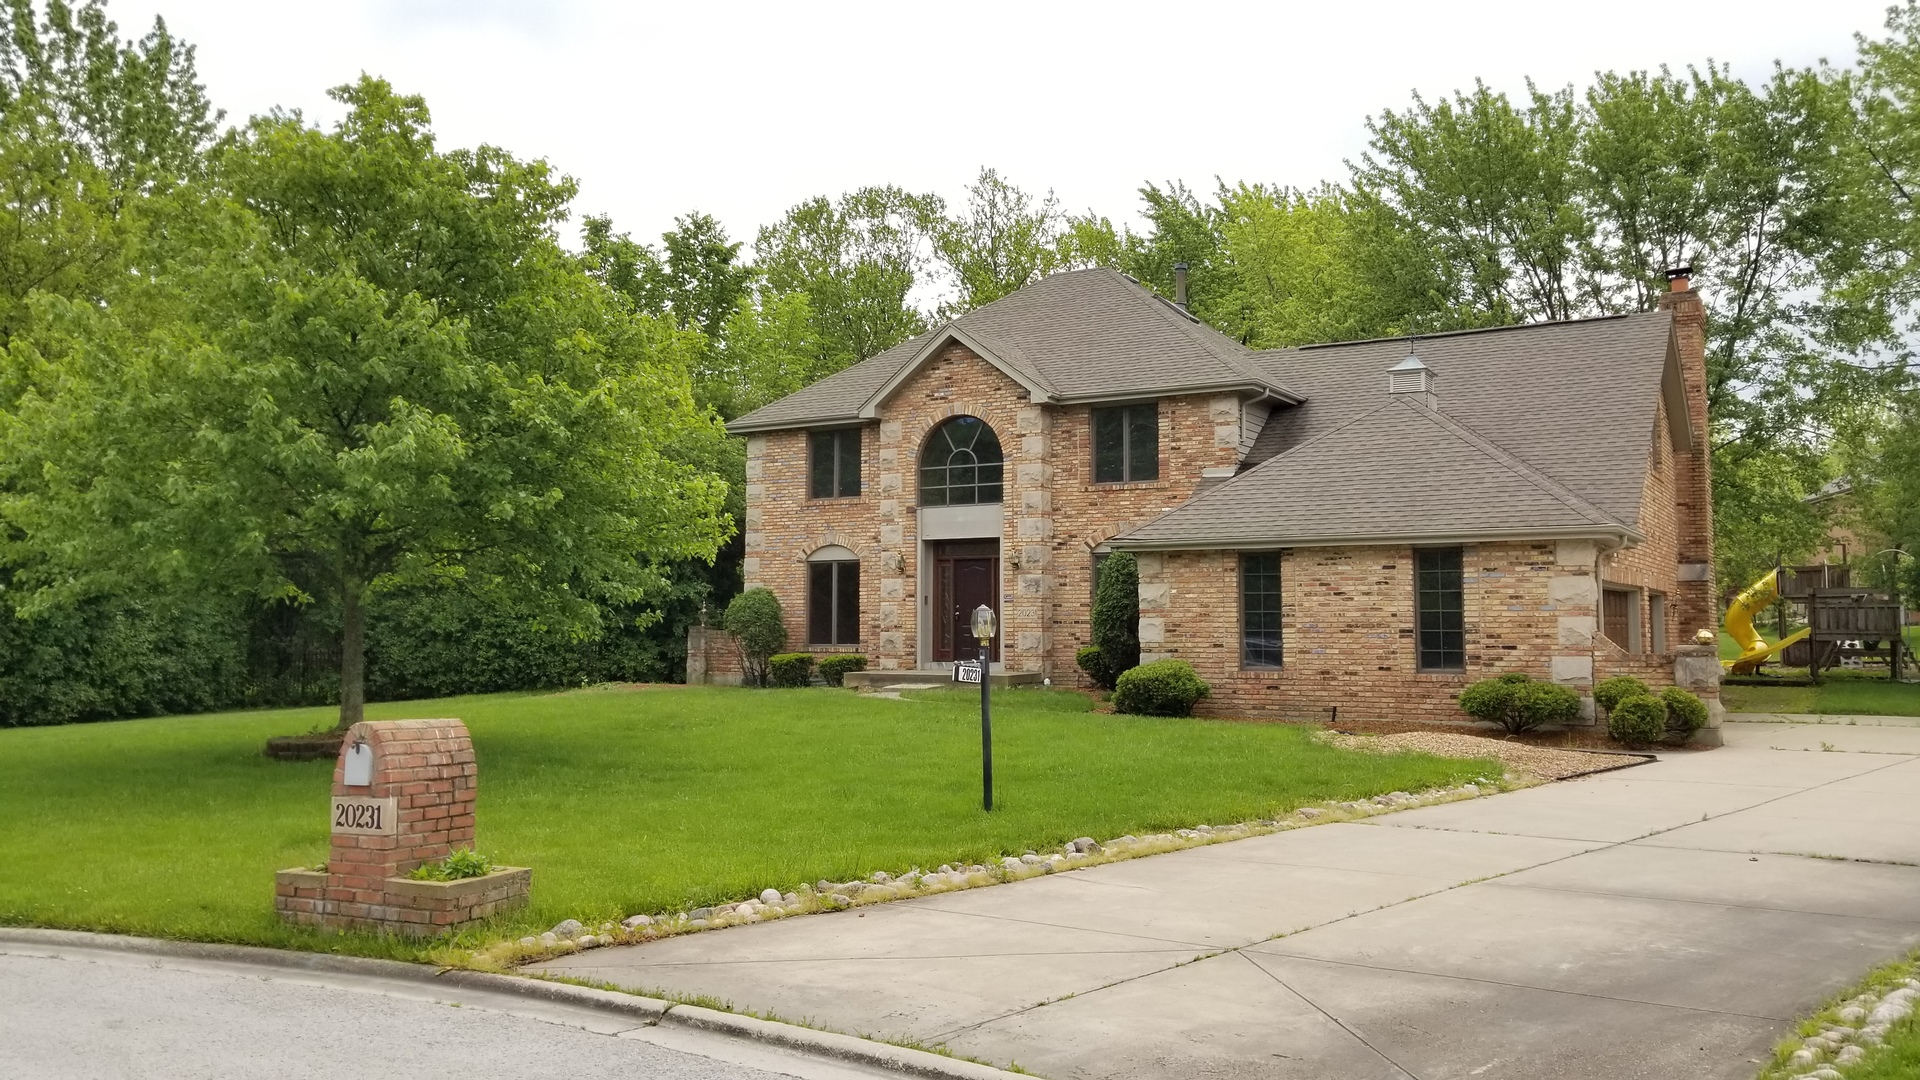 20231 St Andrews Court, Olympia Fields, IL 60461